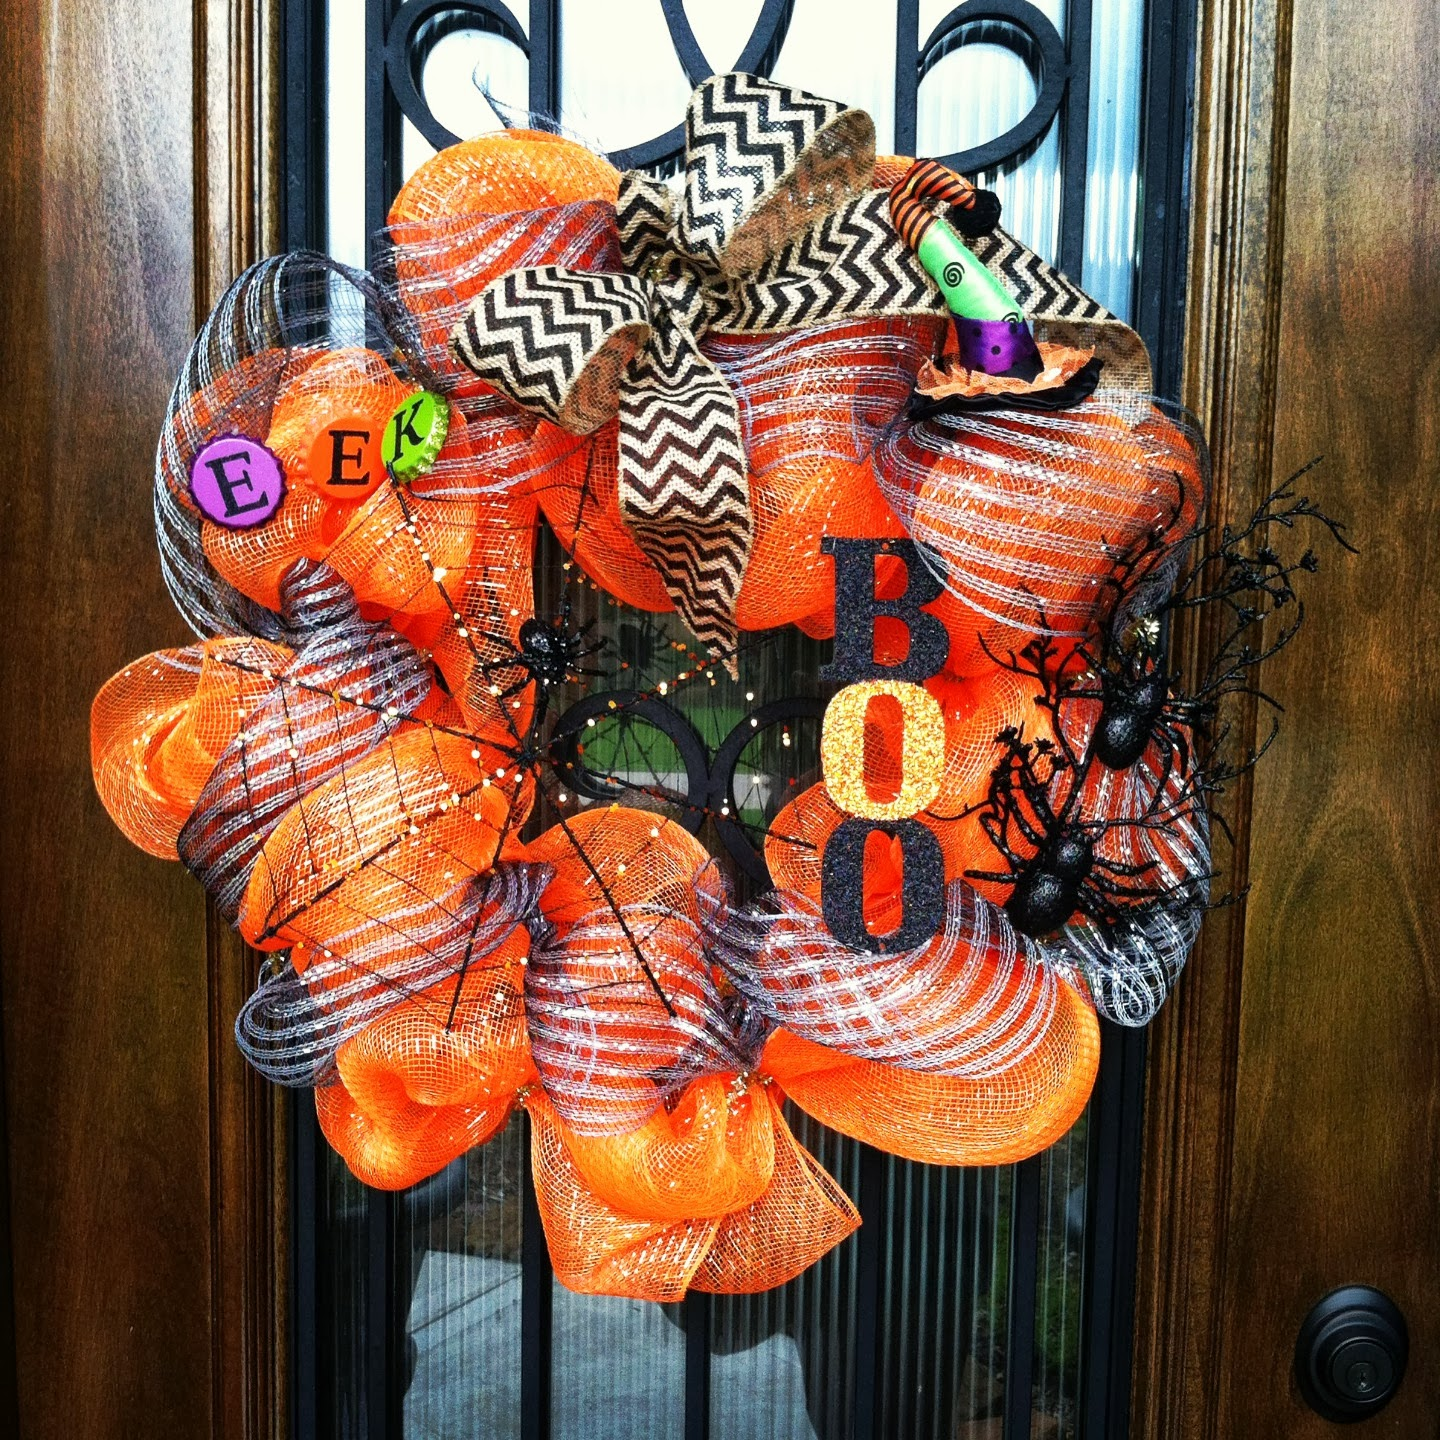 diy deco mesh halloween wreath. Black Bedroom Furniture Sets. Home Design Ideas